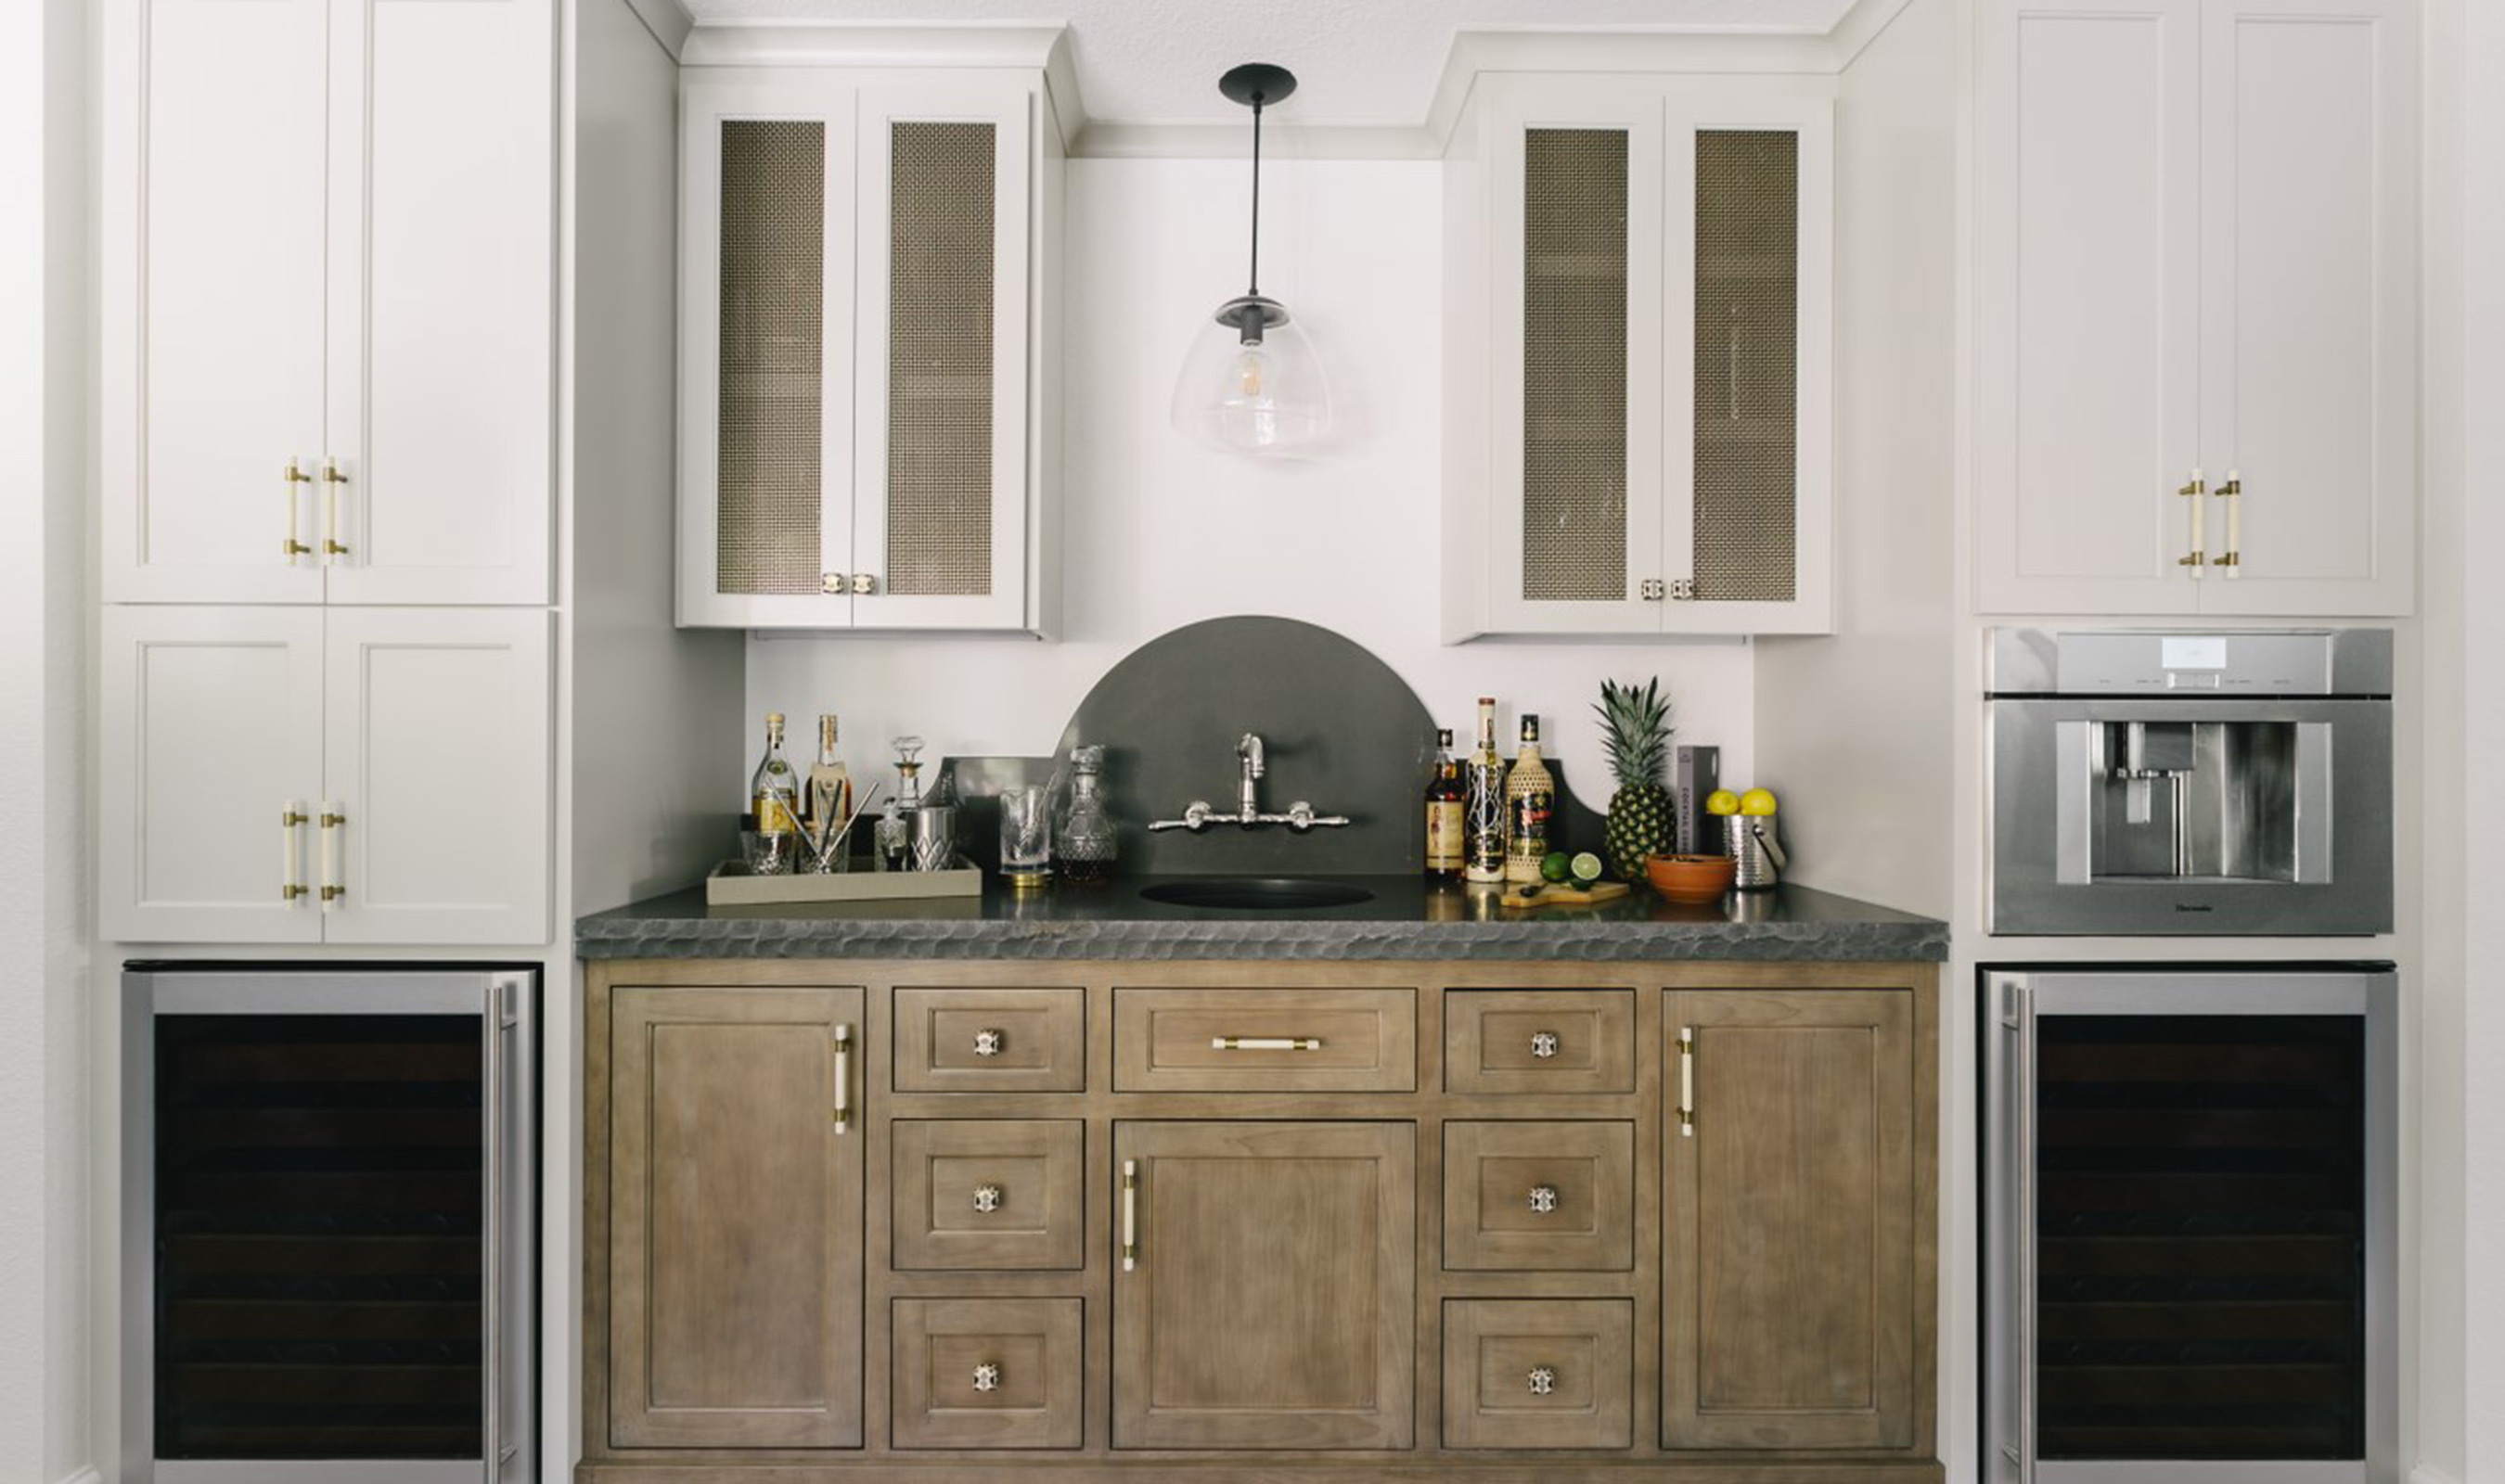 S-12's Antique Brass plated finish brings balance to the home's bar area.